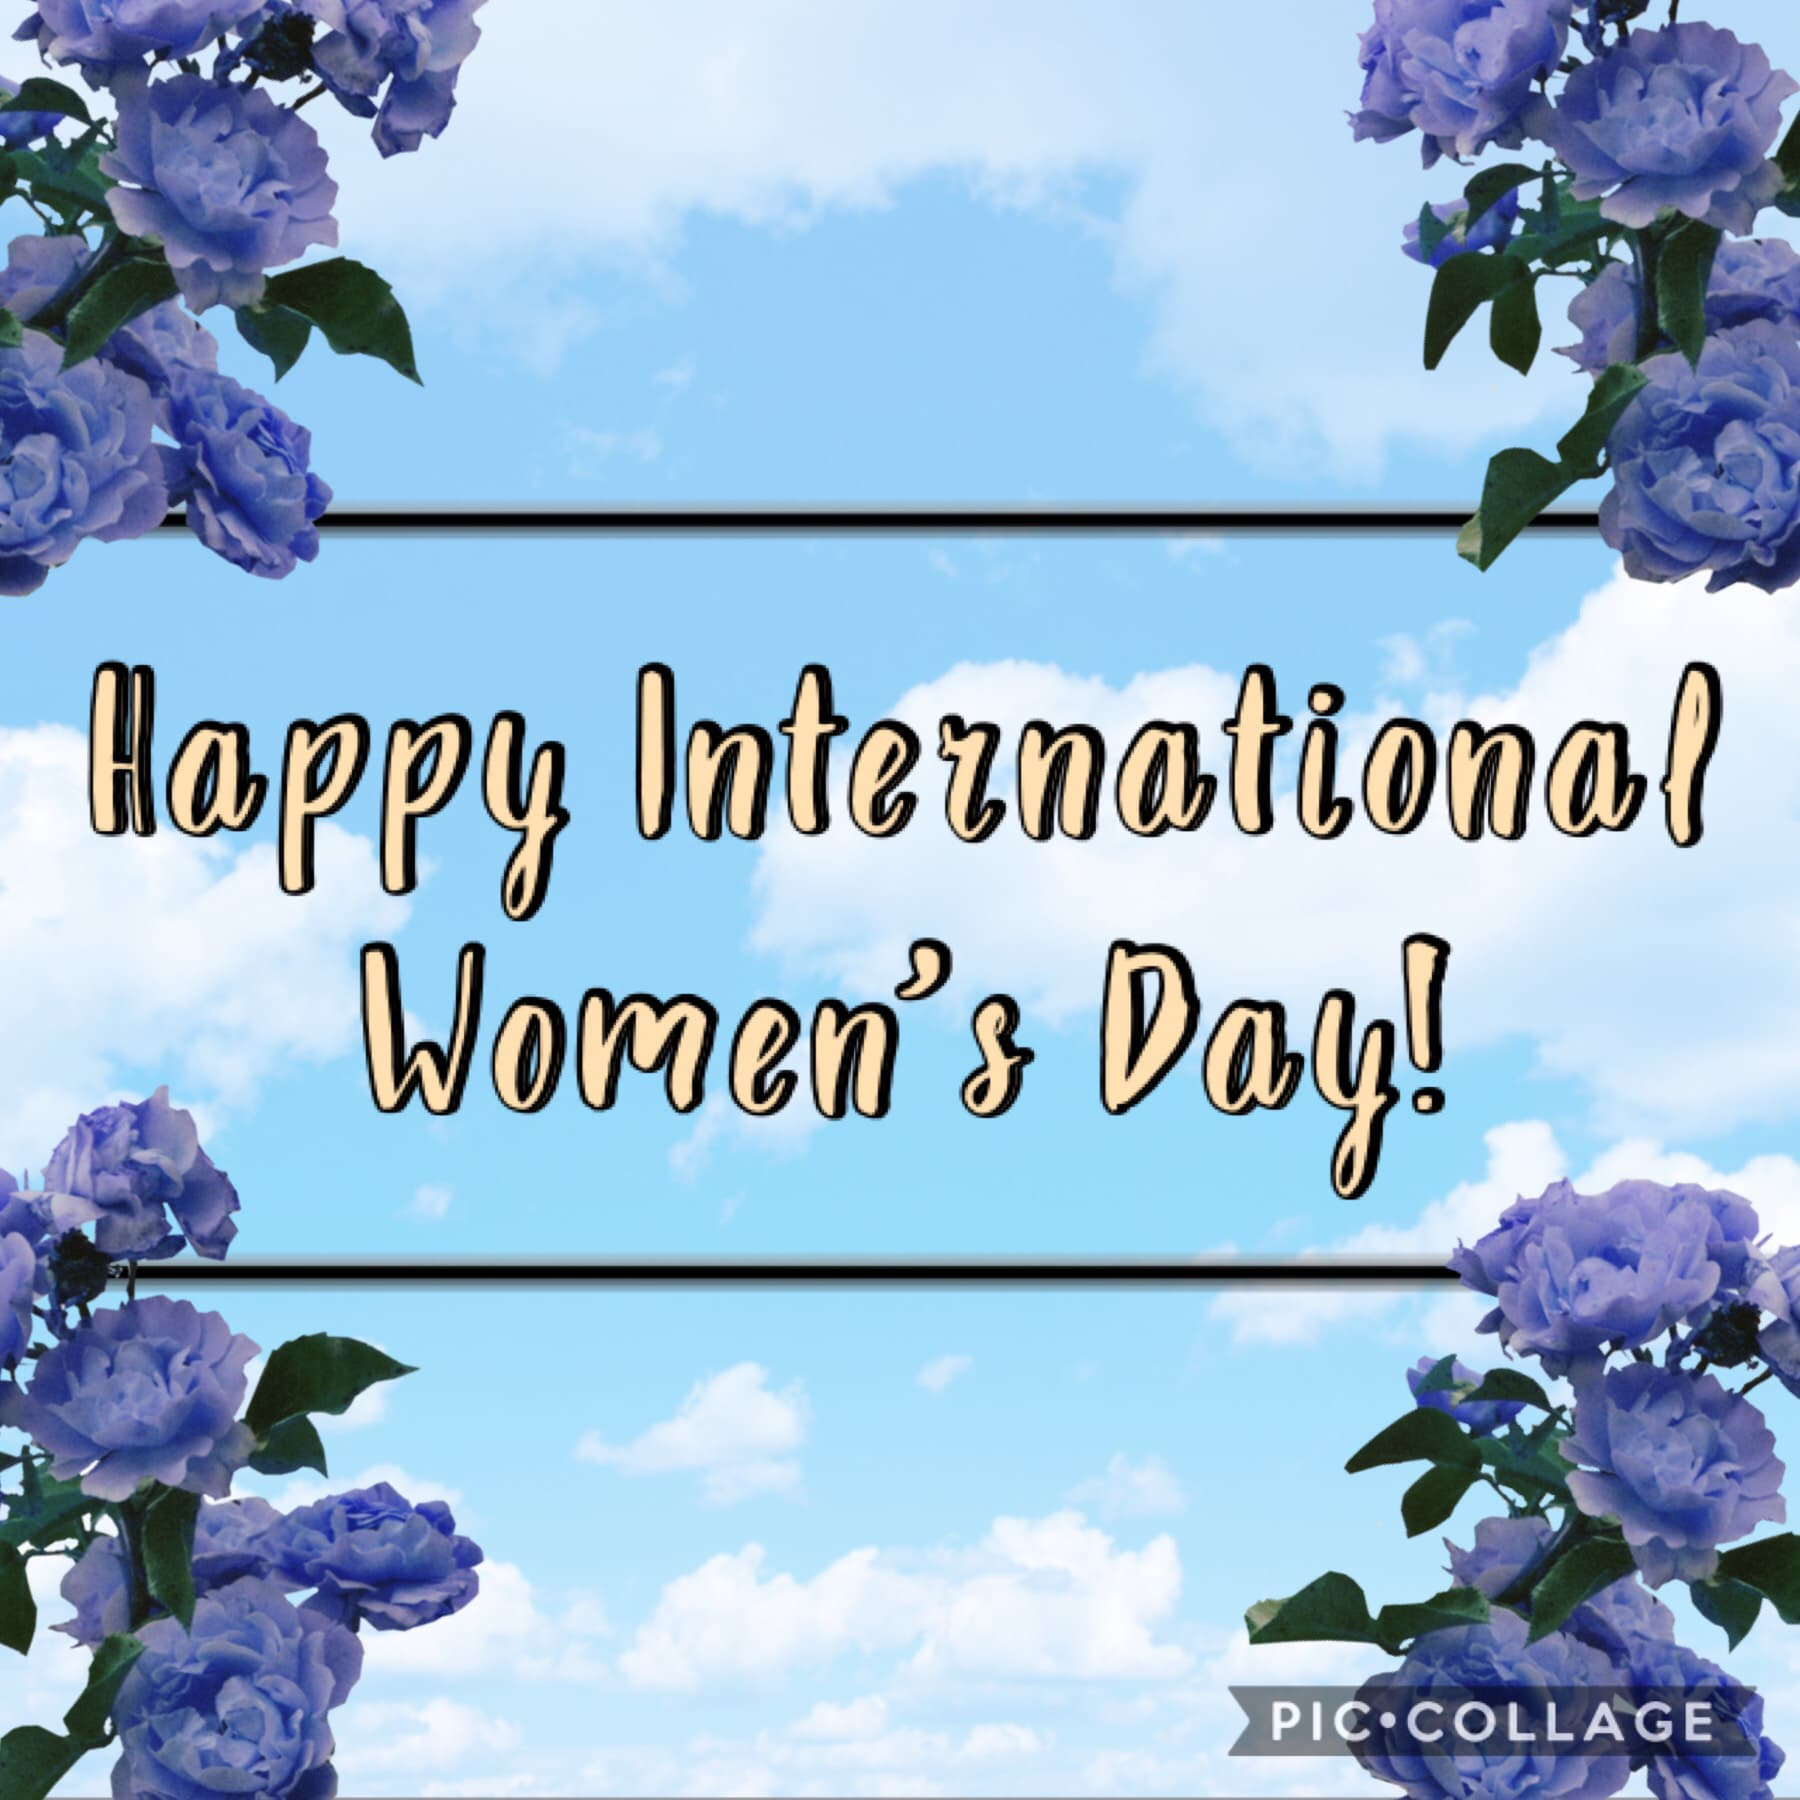 Happy International Women's Day! 👑 🚺 💪🏻 💪🏼 💪🏽 💪🏾 💪🏿 💙 👩🏻🦲 🧕🏻 👱🏻♀️ 👩🏻🦰 👩🏻 👩🏽🦱 👩🏾 👩🏿 👩🏻🦳 🧬 It's also Middle Name Pride Day. 😆 QOTN: What's yours? 🧐 AOTN: Hope. 🌈 My mom is gonna trim my hair later, it's getting kinda long again... 😬 ✂️ 🤞🏻